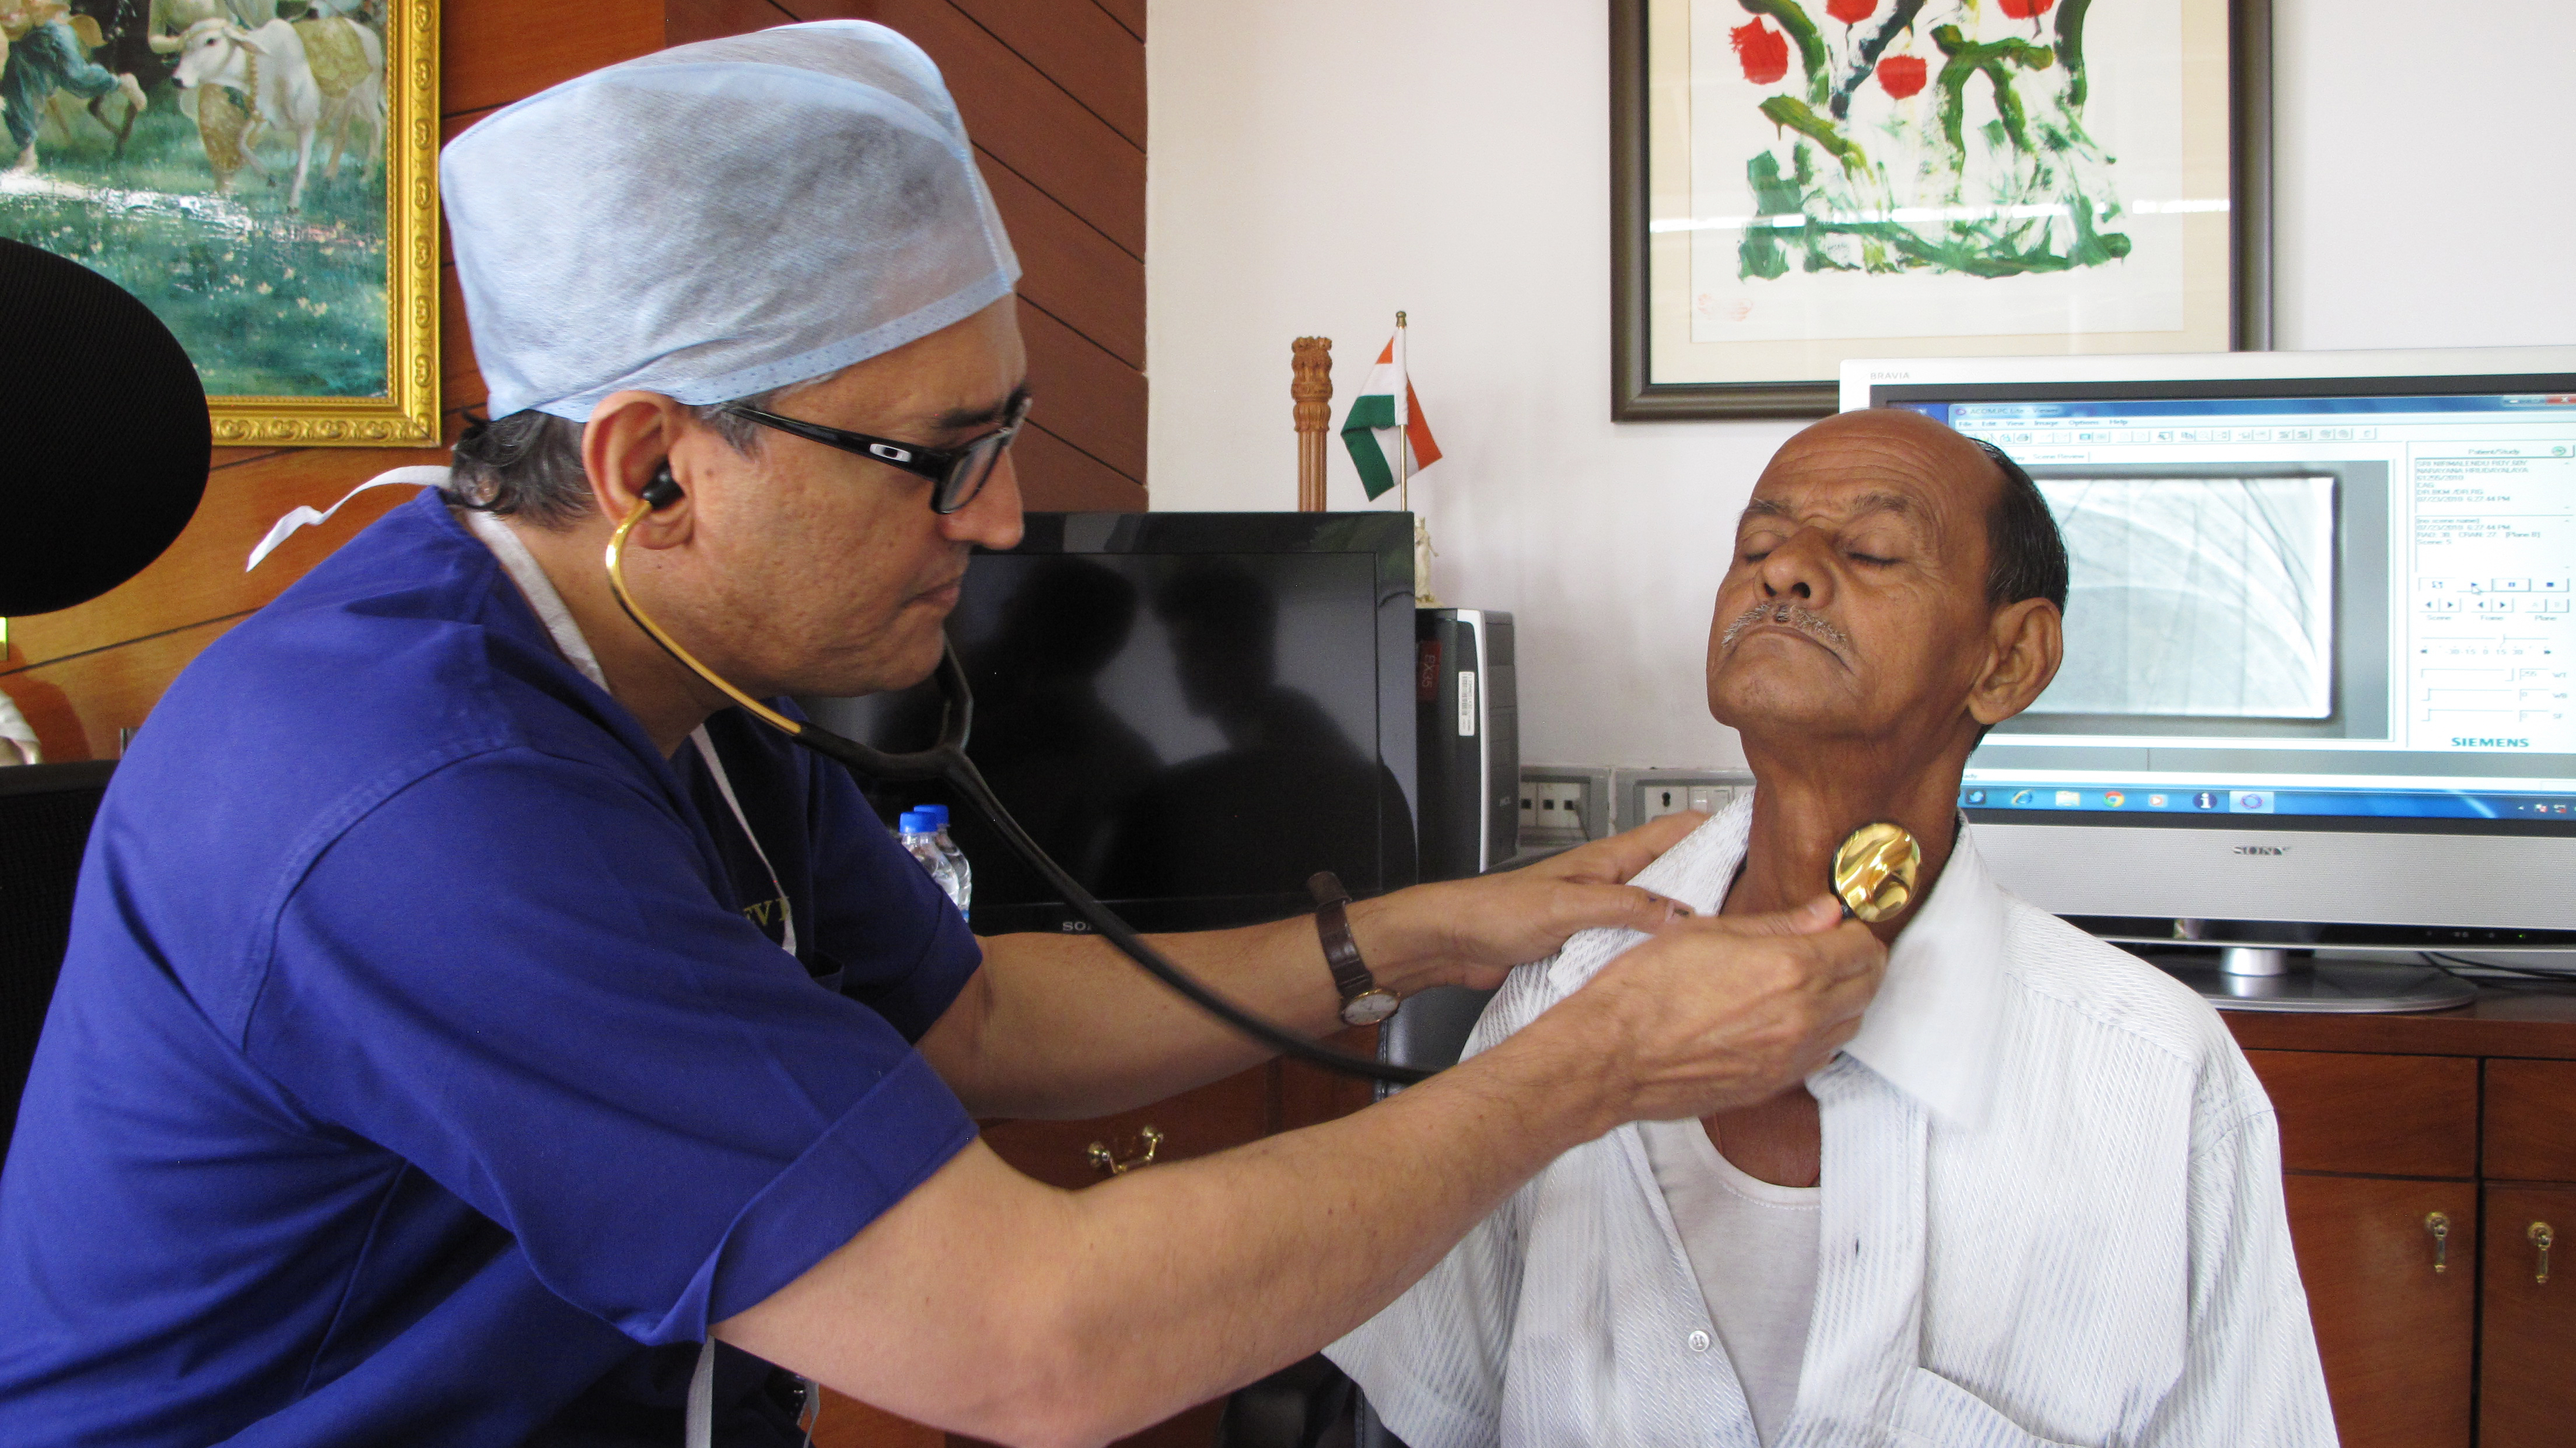 India S Philanthropist Surgeon Delivers Cardiac Care Henry Ford Style Goats And Soda Npr